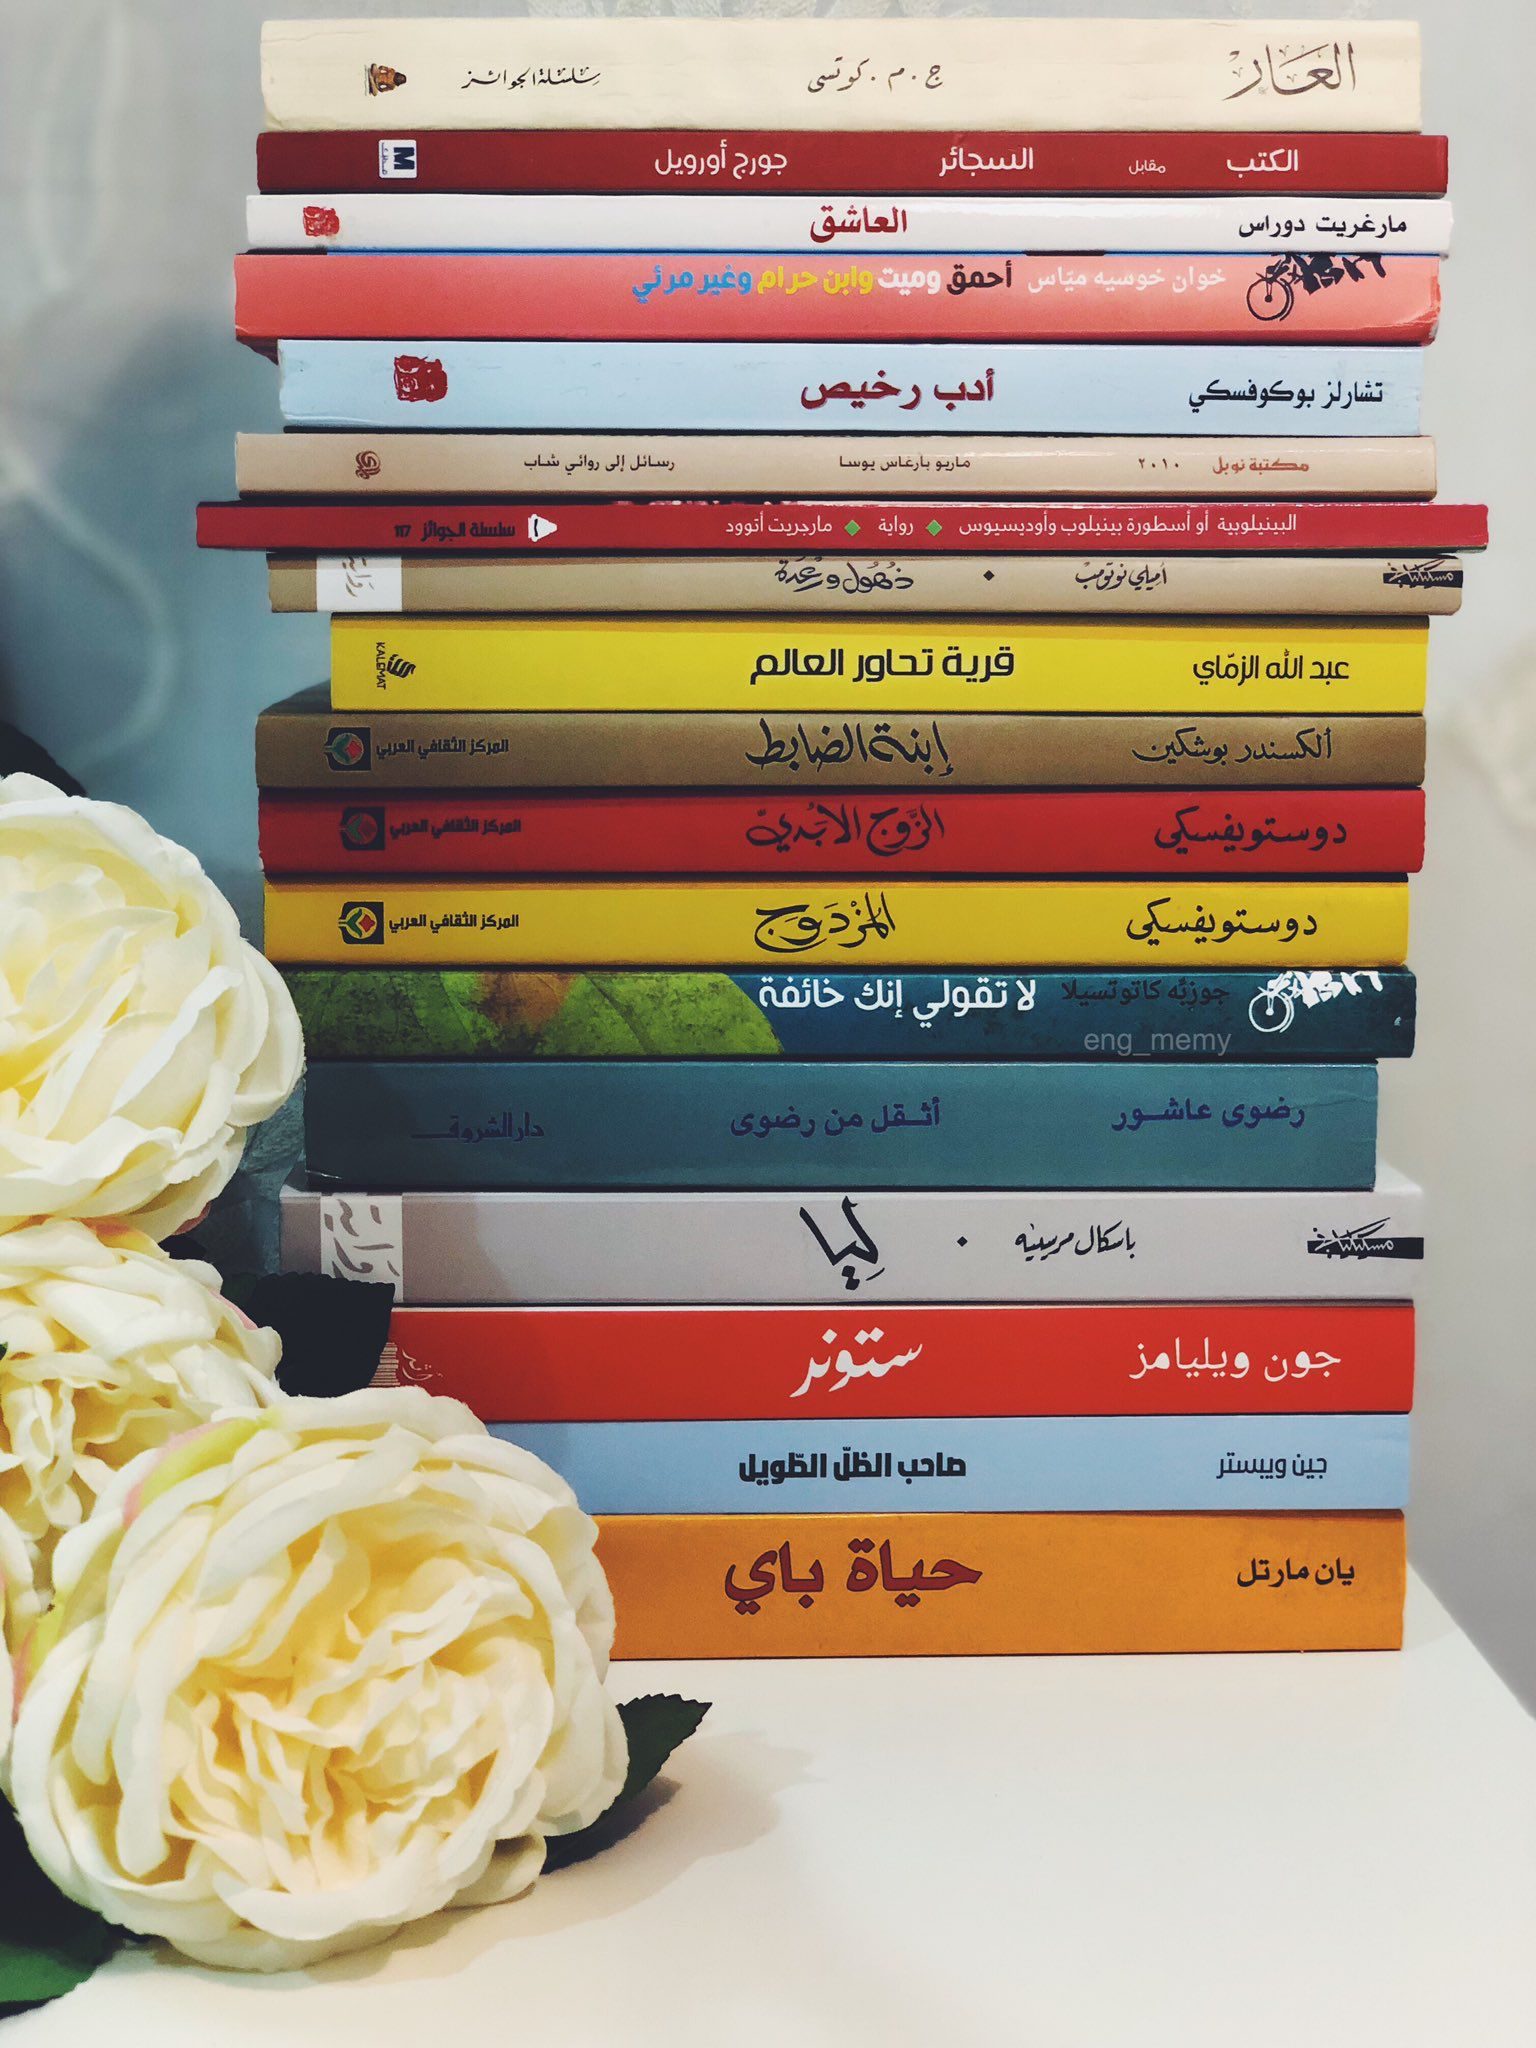 Pin by Goodwill on كتب   Inspirational books, Arabic books, Book qoutes